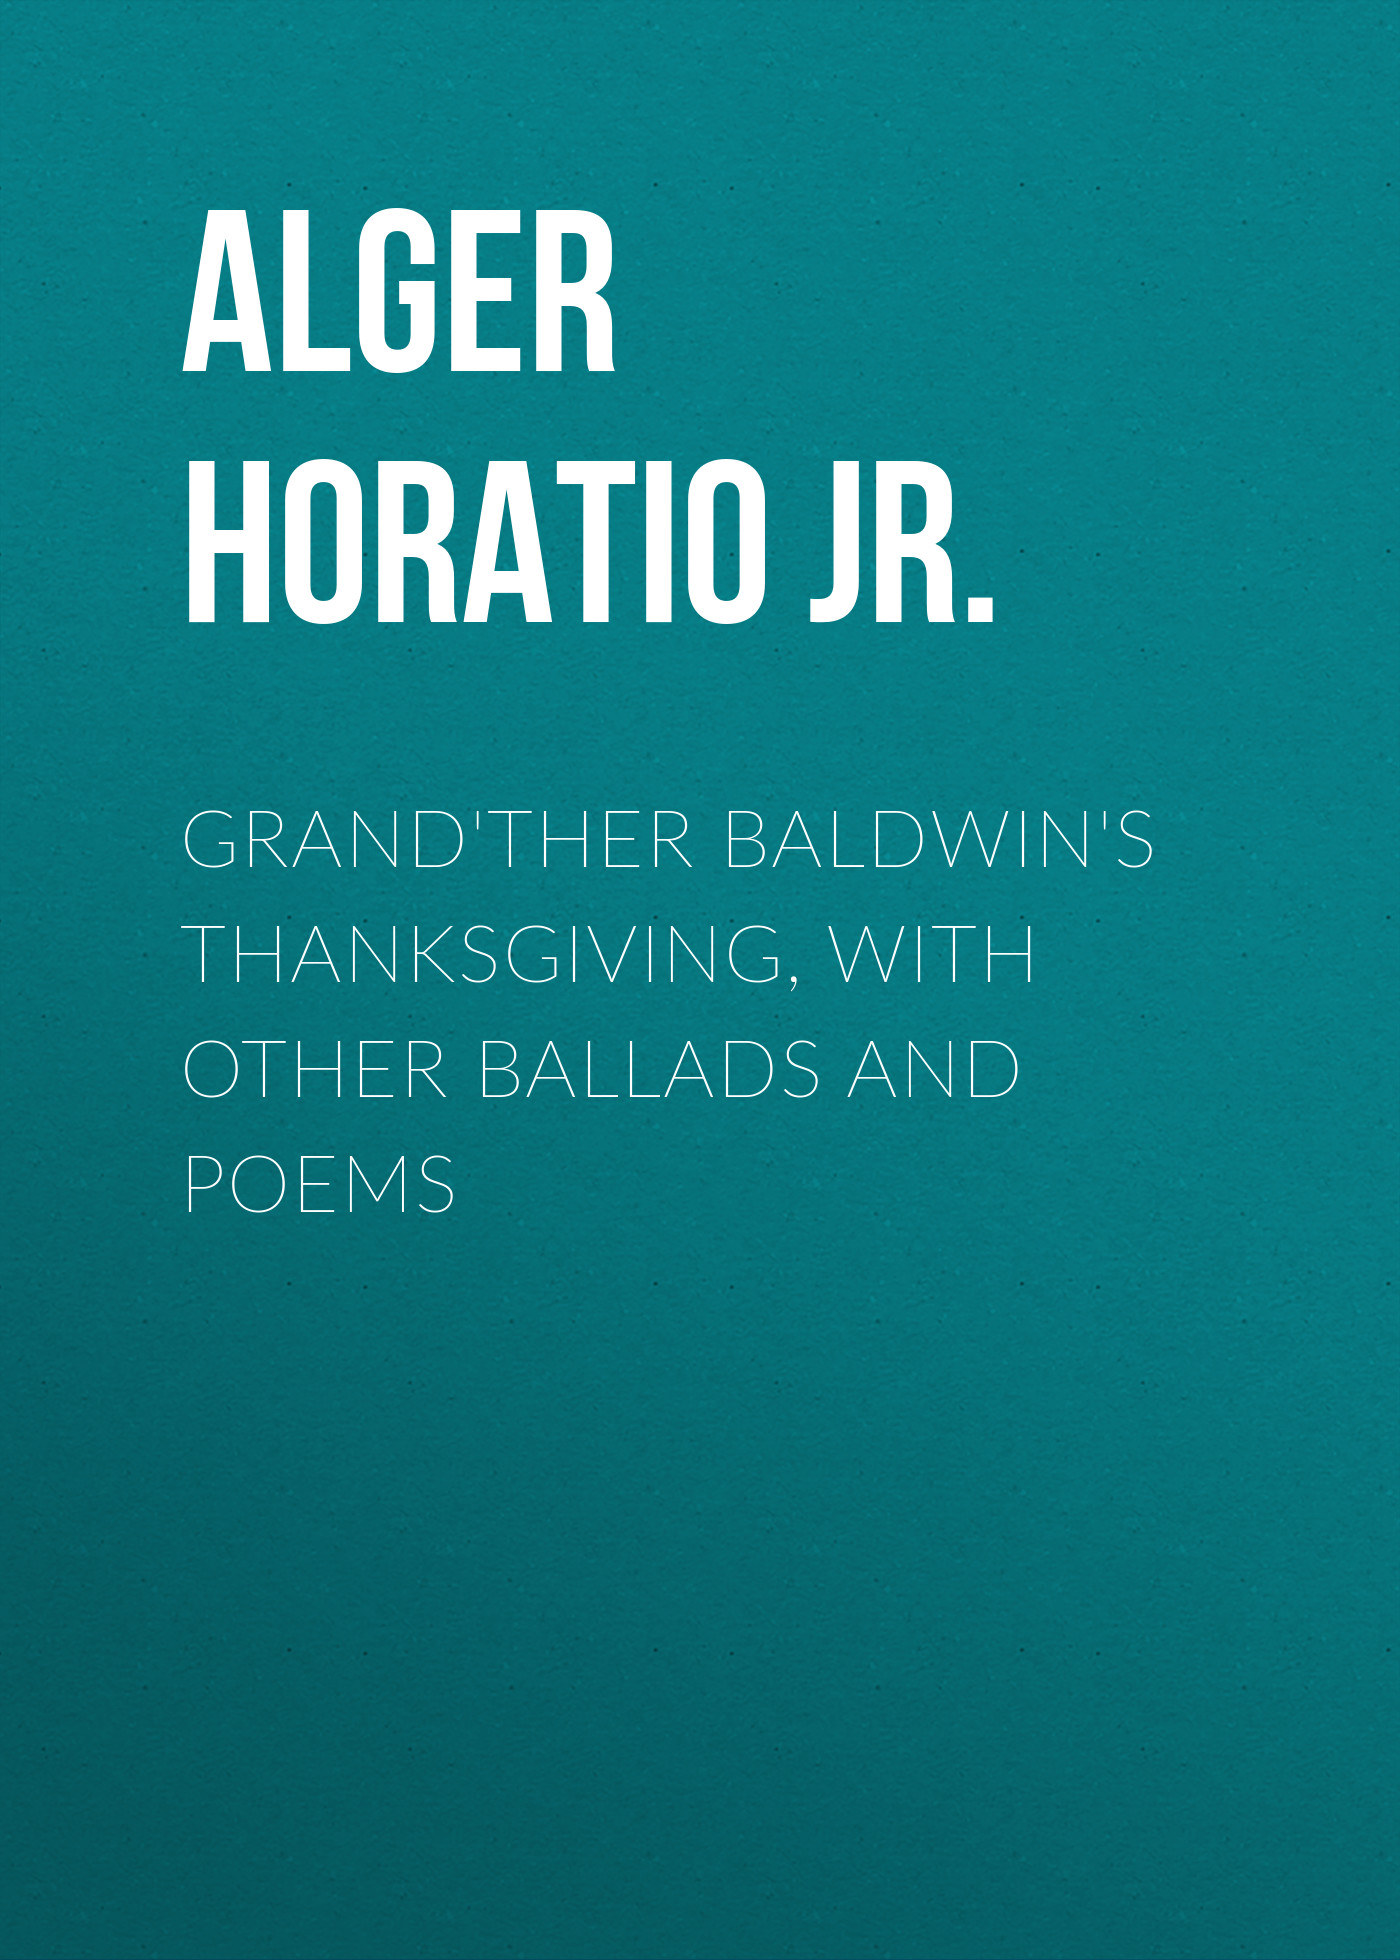 Alger Horatio Jr. Grand'ther Baldwin's Thanksgiving, with Other Ballads and Poems waste land and other poems